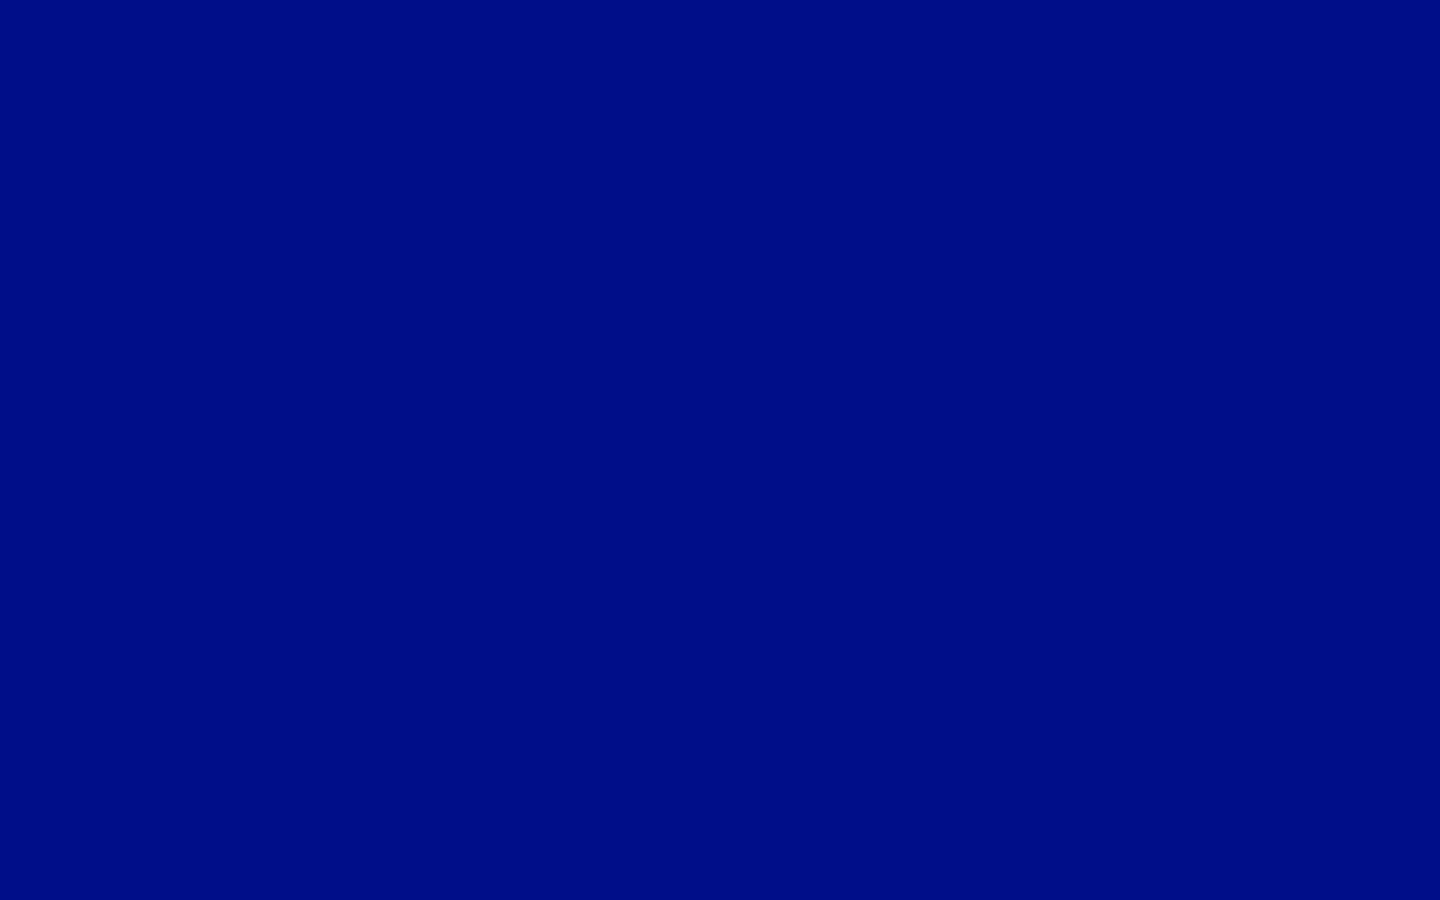 1440x900 Phthalo Blue Solid Color Background